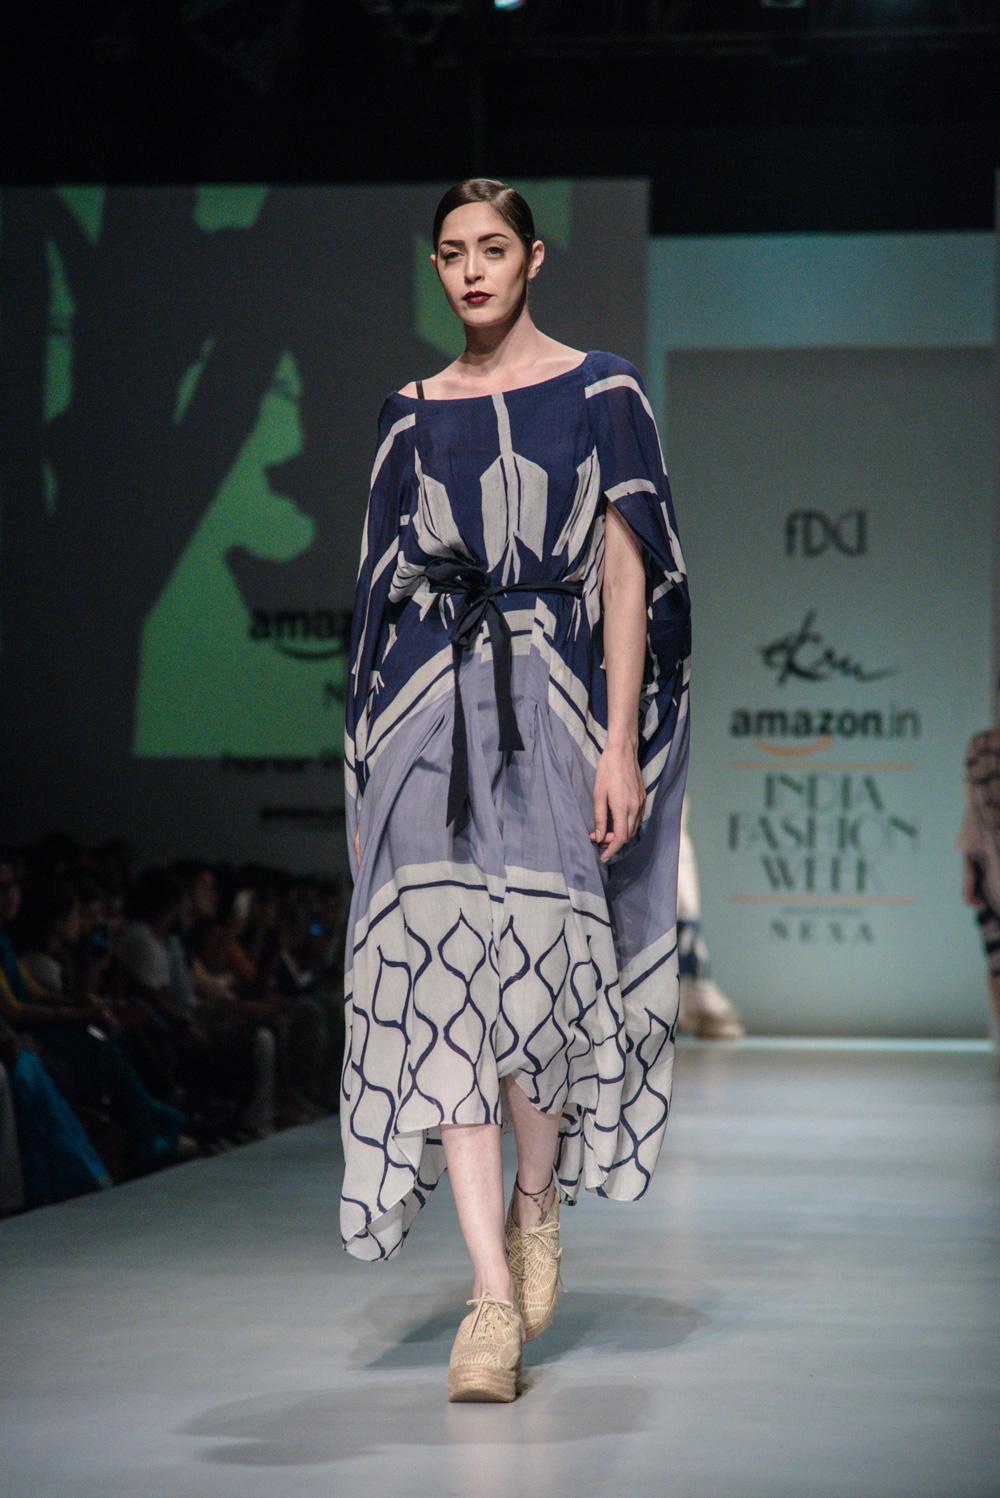 Ekru by Ektaa FDCI Amazon India Fashion Week Spring Summer 2018 Look 13